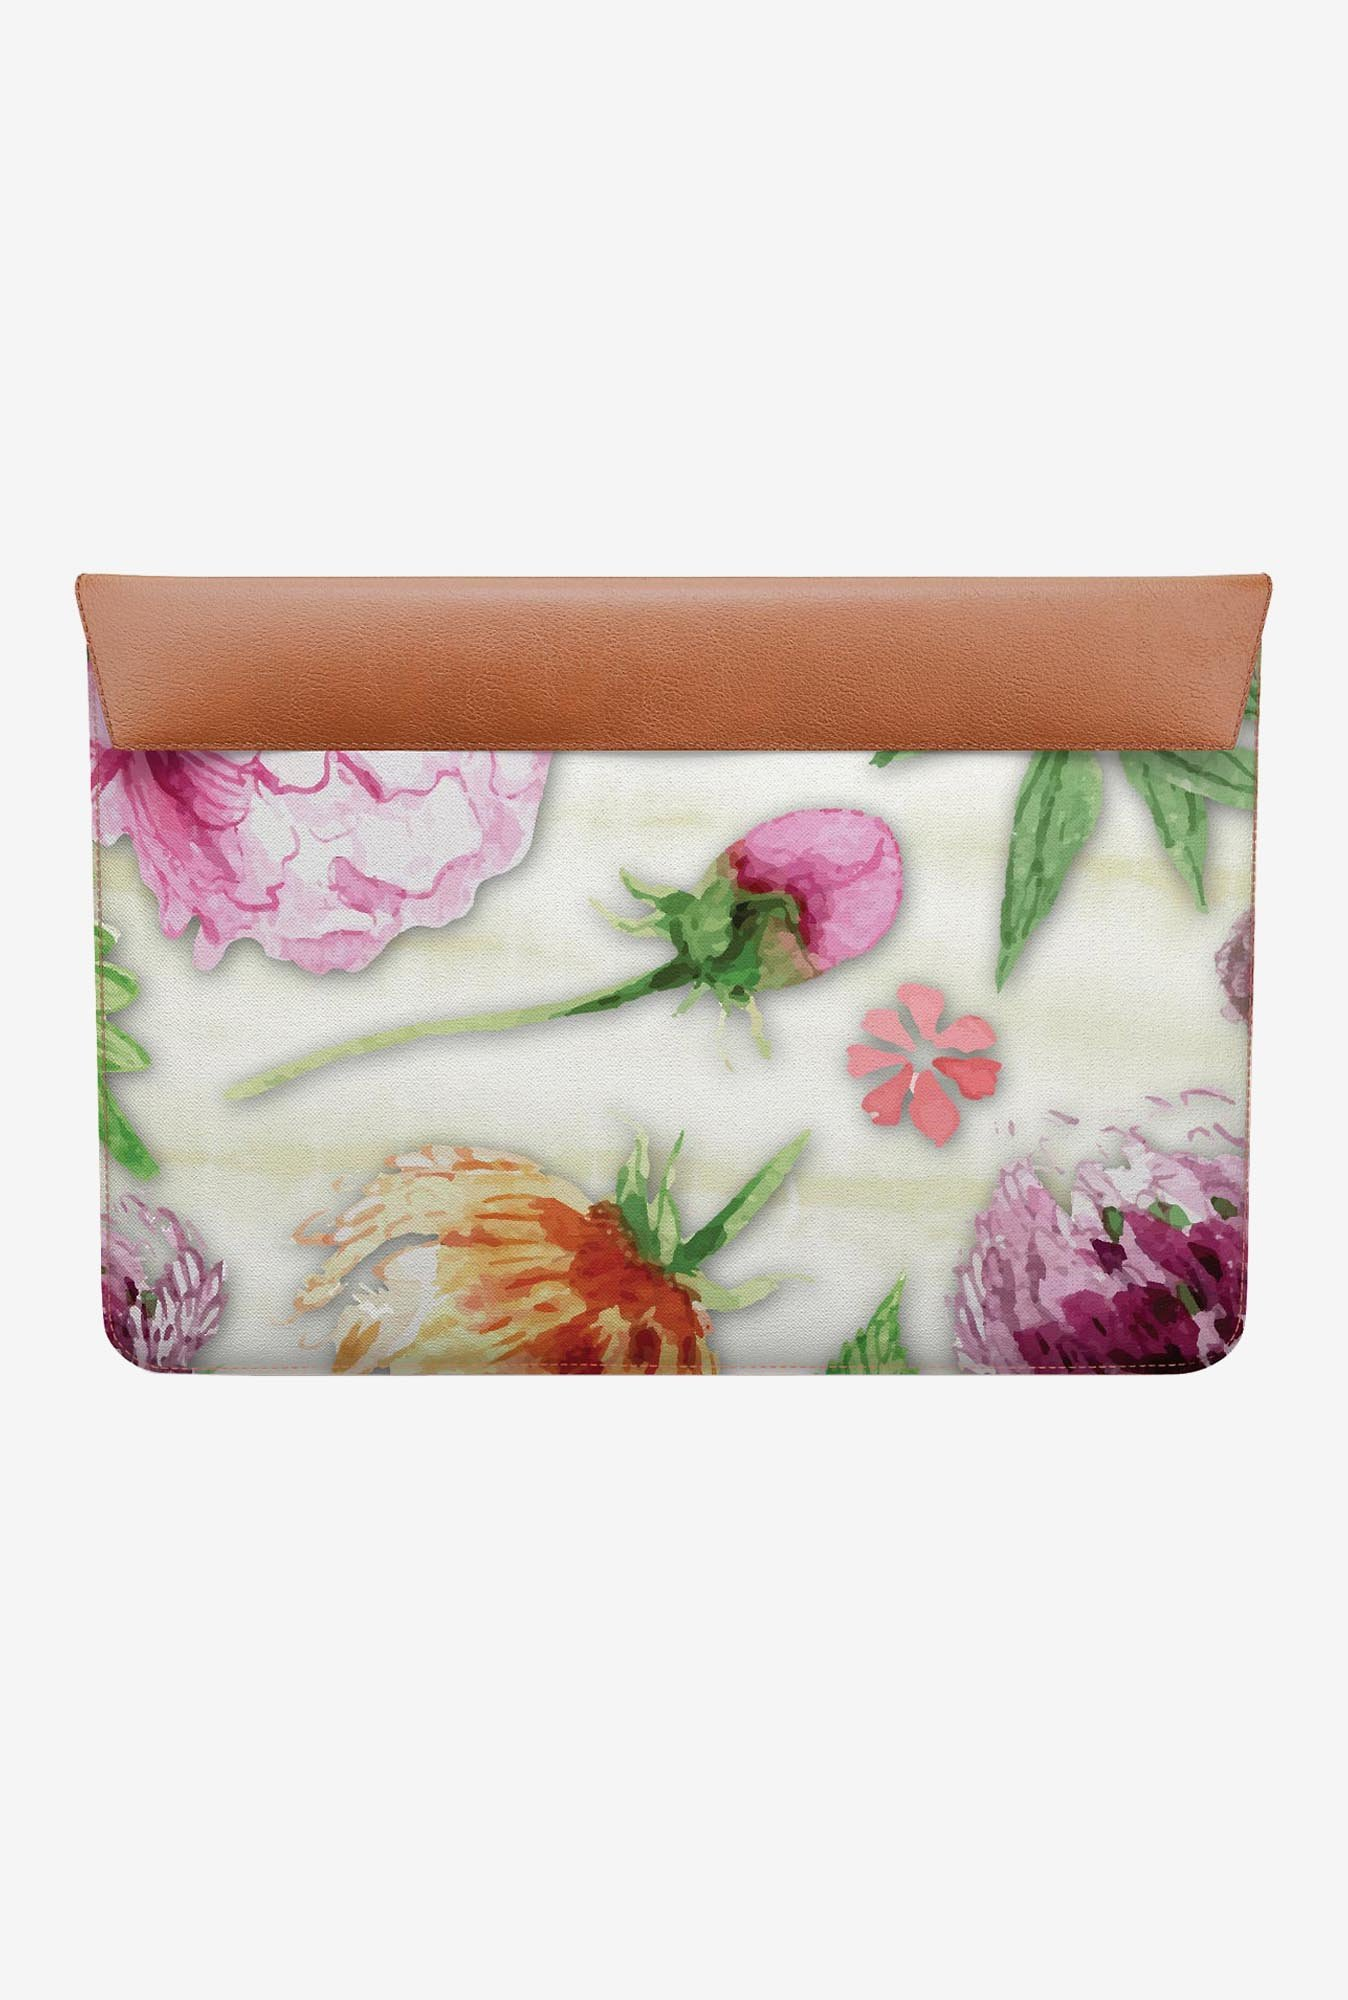 DailyObjects Floral Colours MacBook Pro 13 Envelope Sleeve